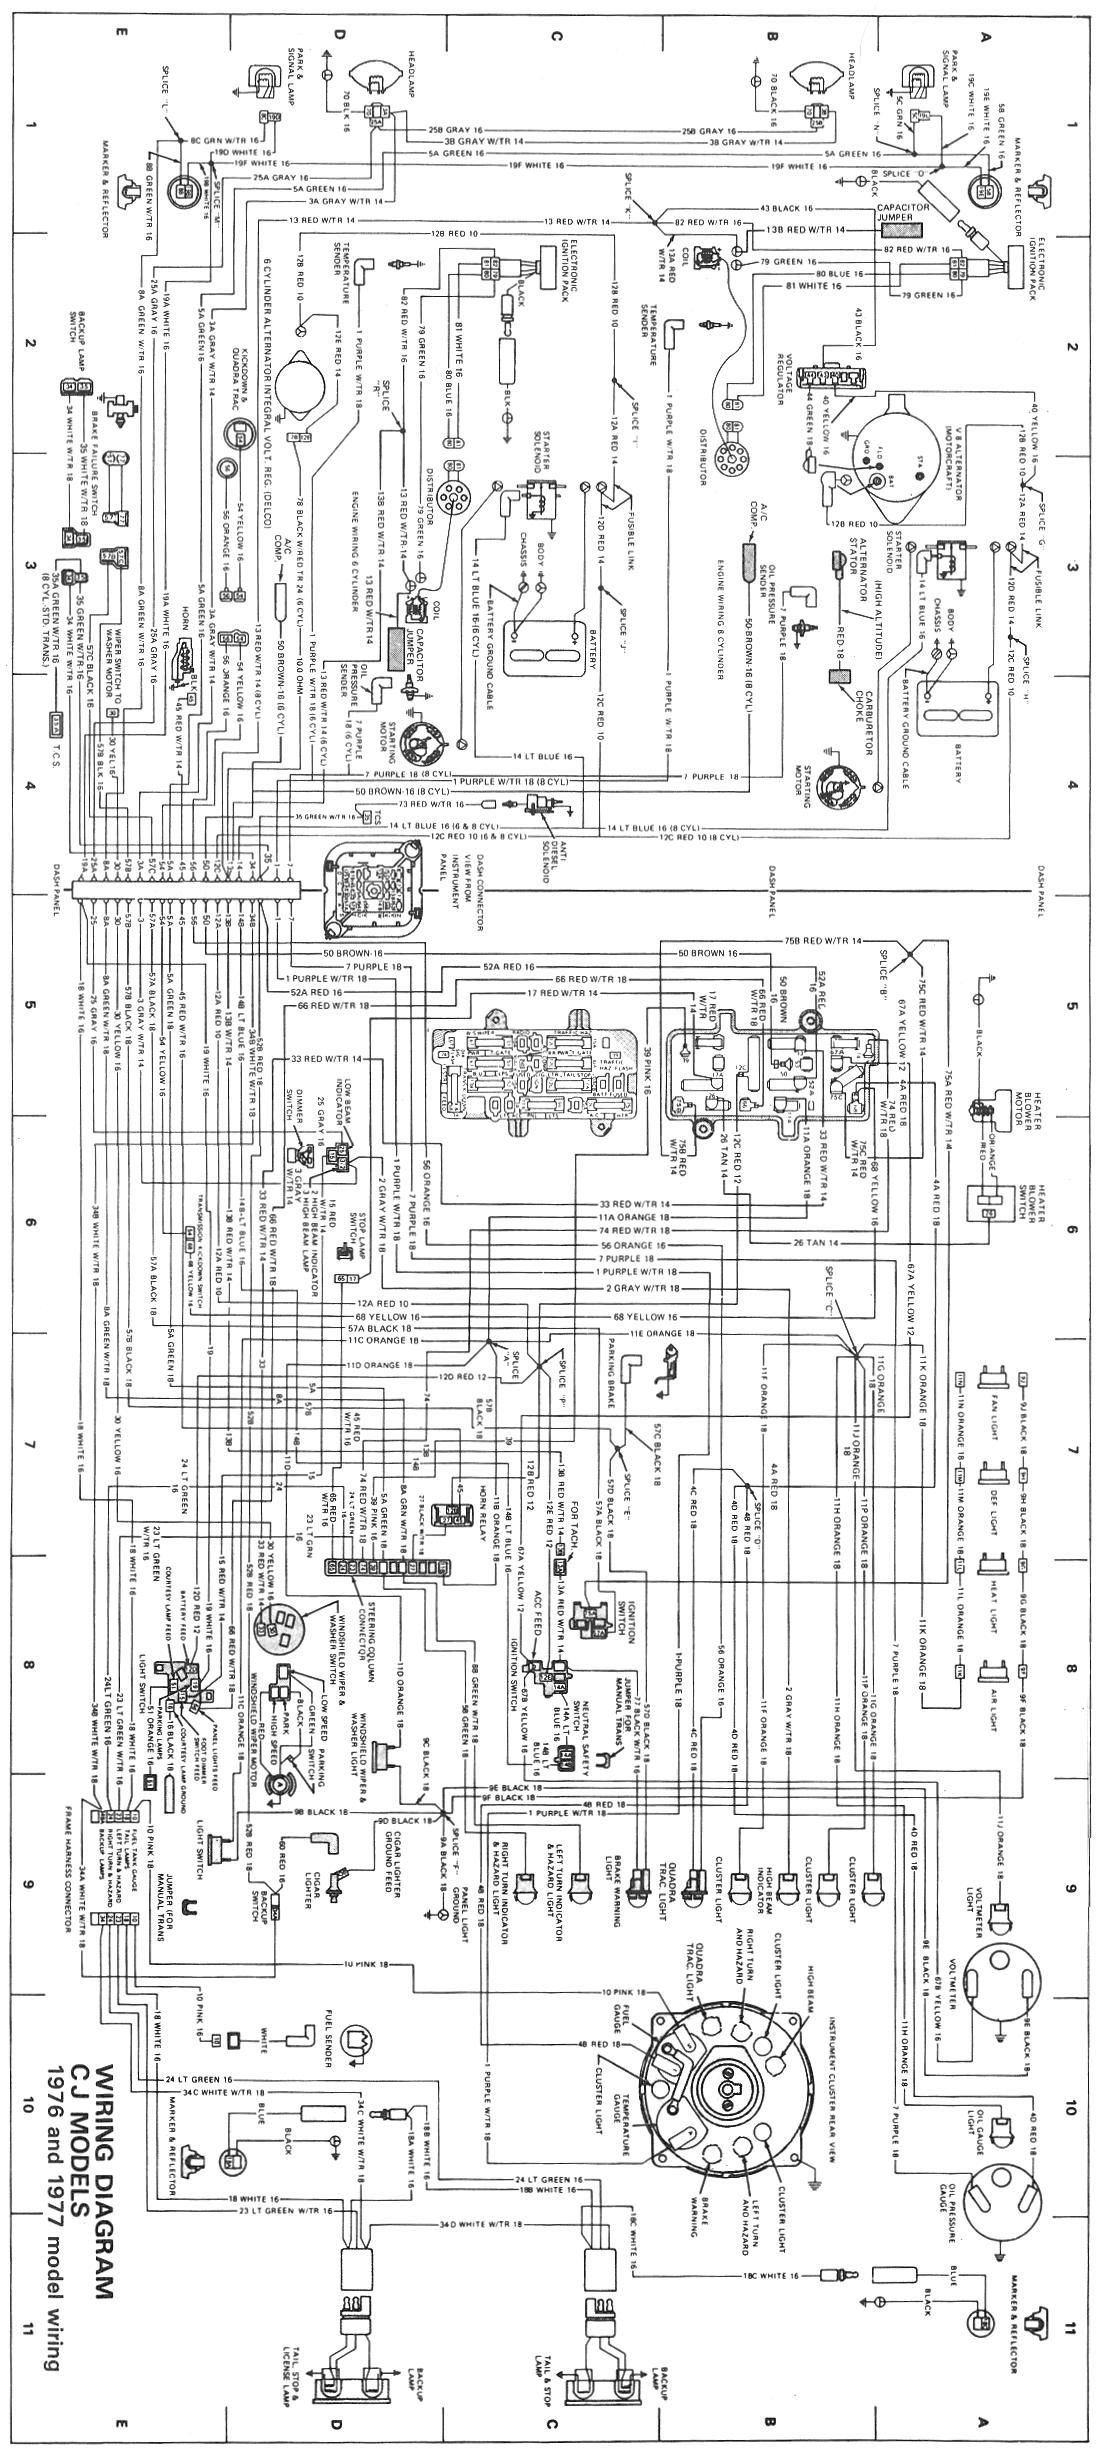 1983 jeep cj7 vacuum diagrams | wiring diagram cj7 wiring harness diagram